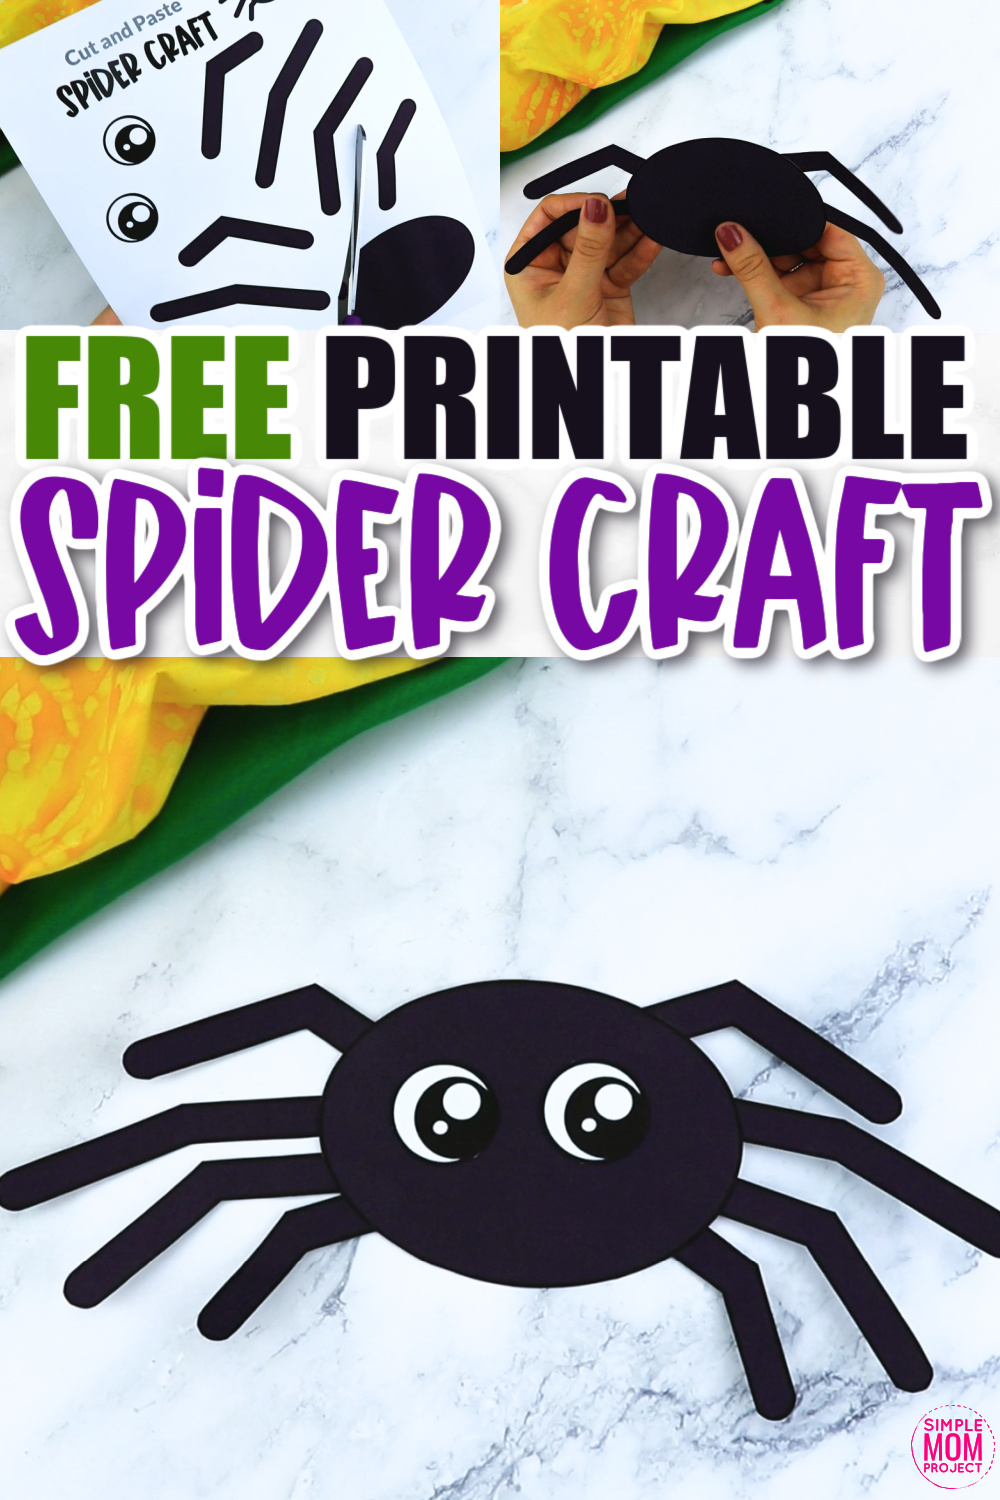 Click now for a simple way to teach the letter S in the alphabet or the number 8, click now to download and print this easy spider craft today! This paper spider craft is an easy preschool, kindergarten or toddler printable spider craft! Turn it into a spider puppet activity with a toilet paper roll or clothespin. Options for this spider craft are endless!